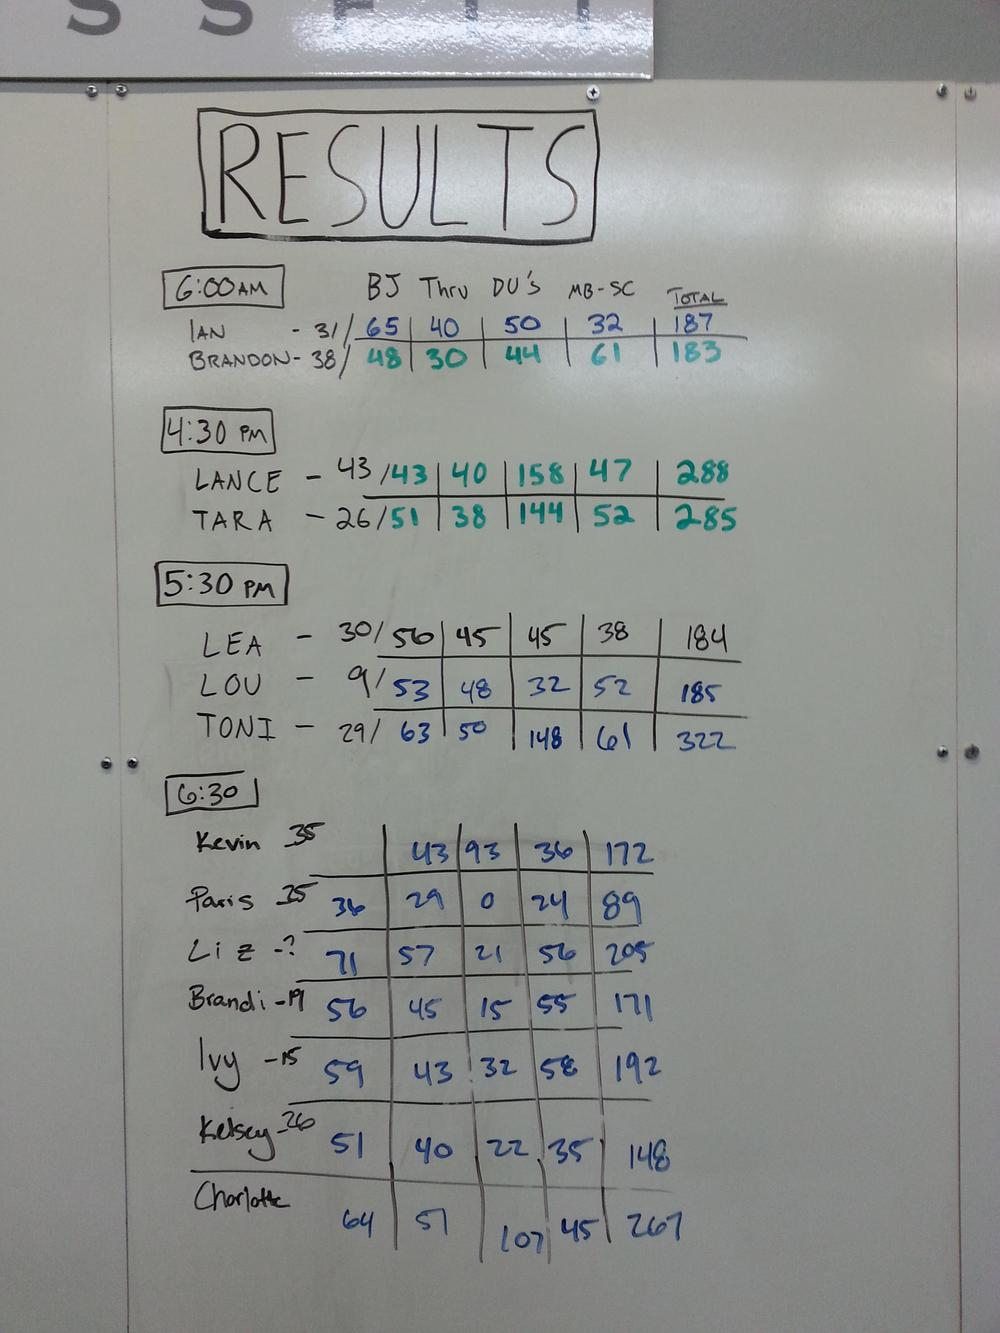 Results from 10/3!